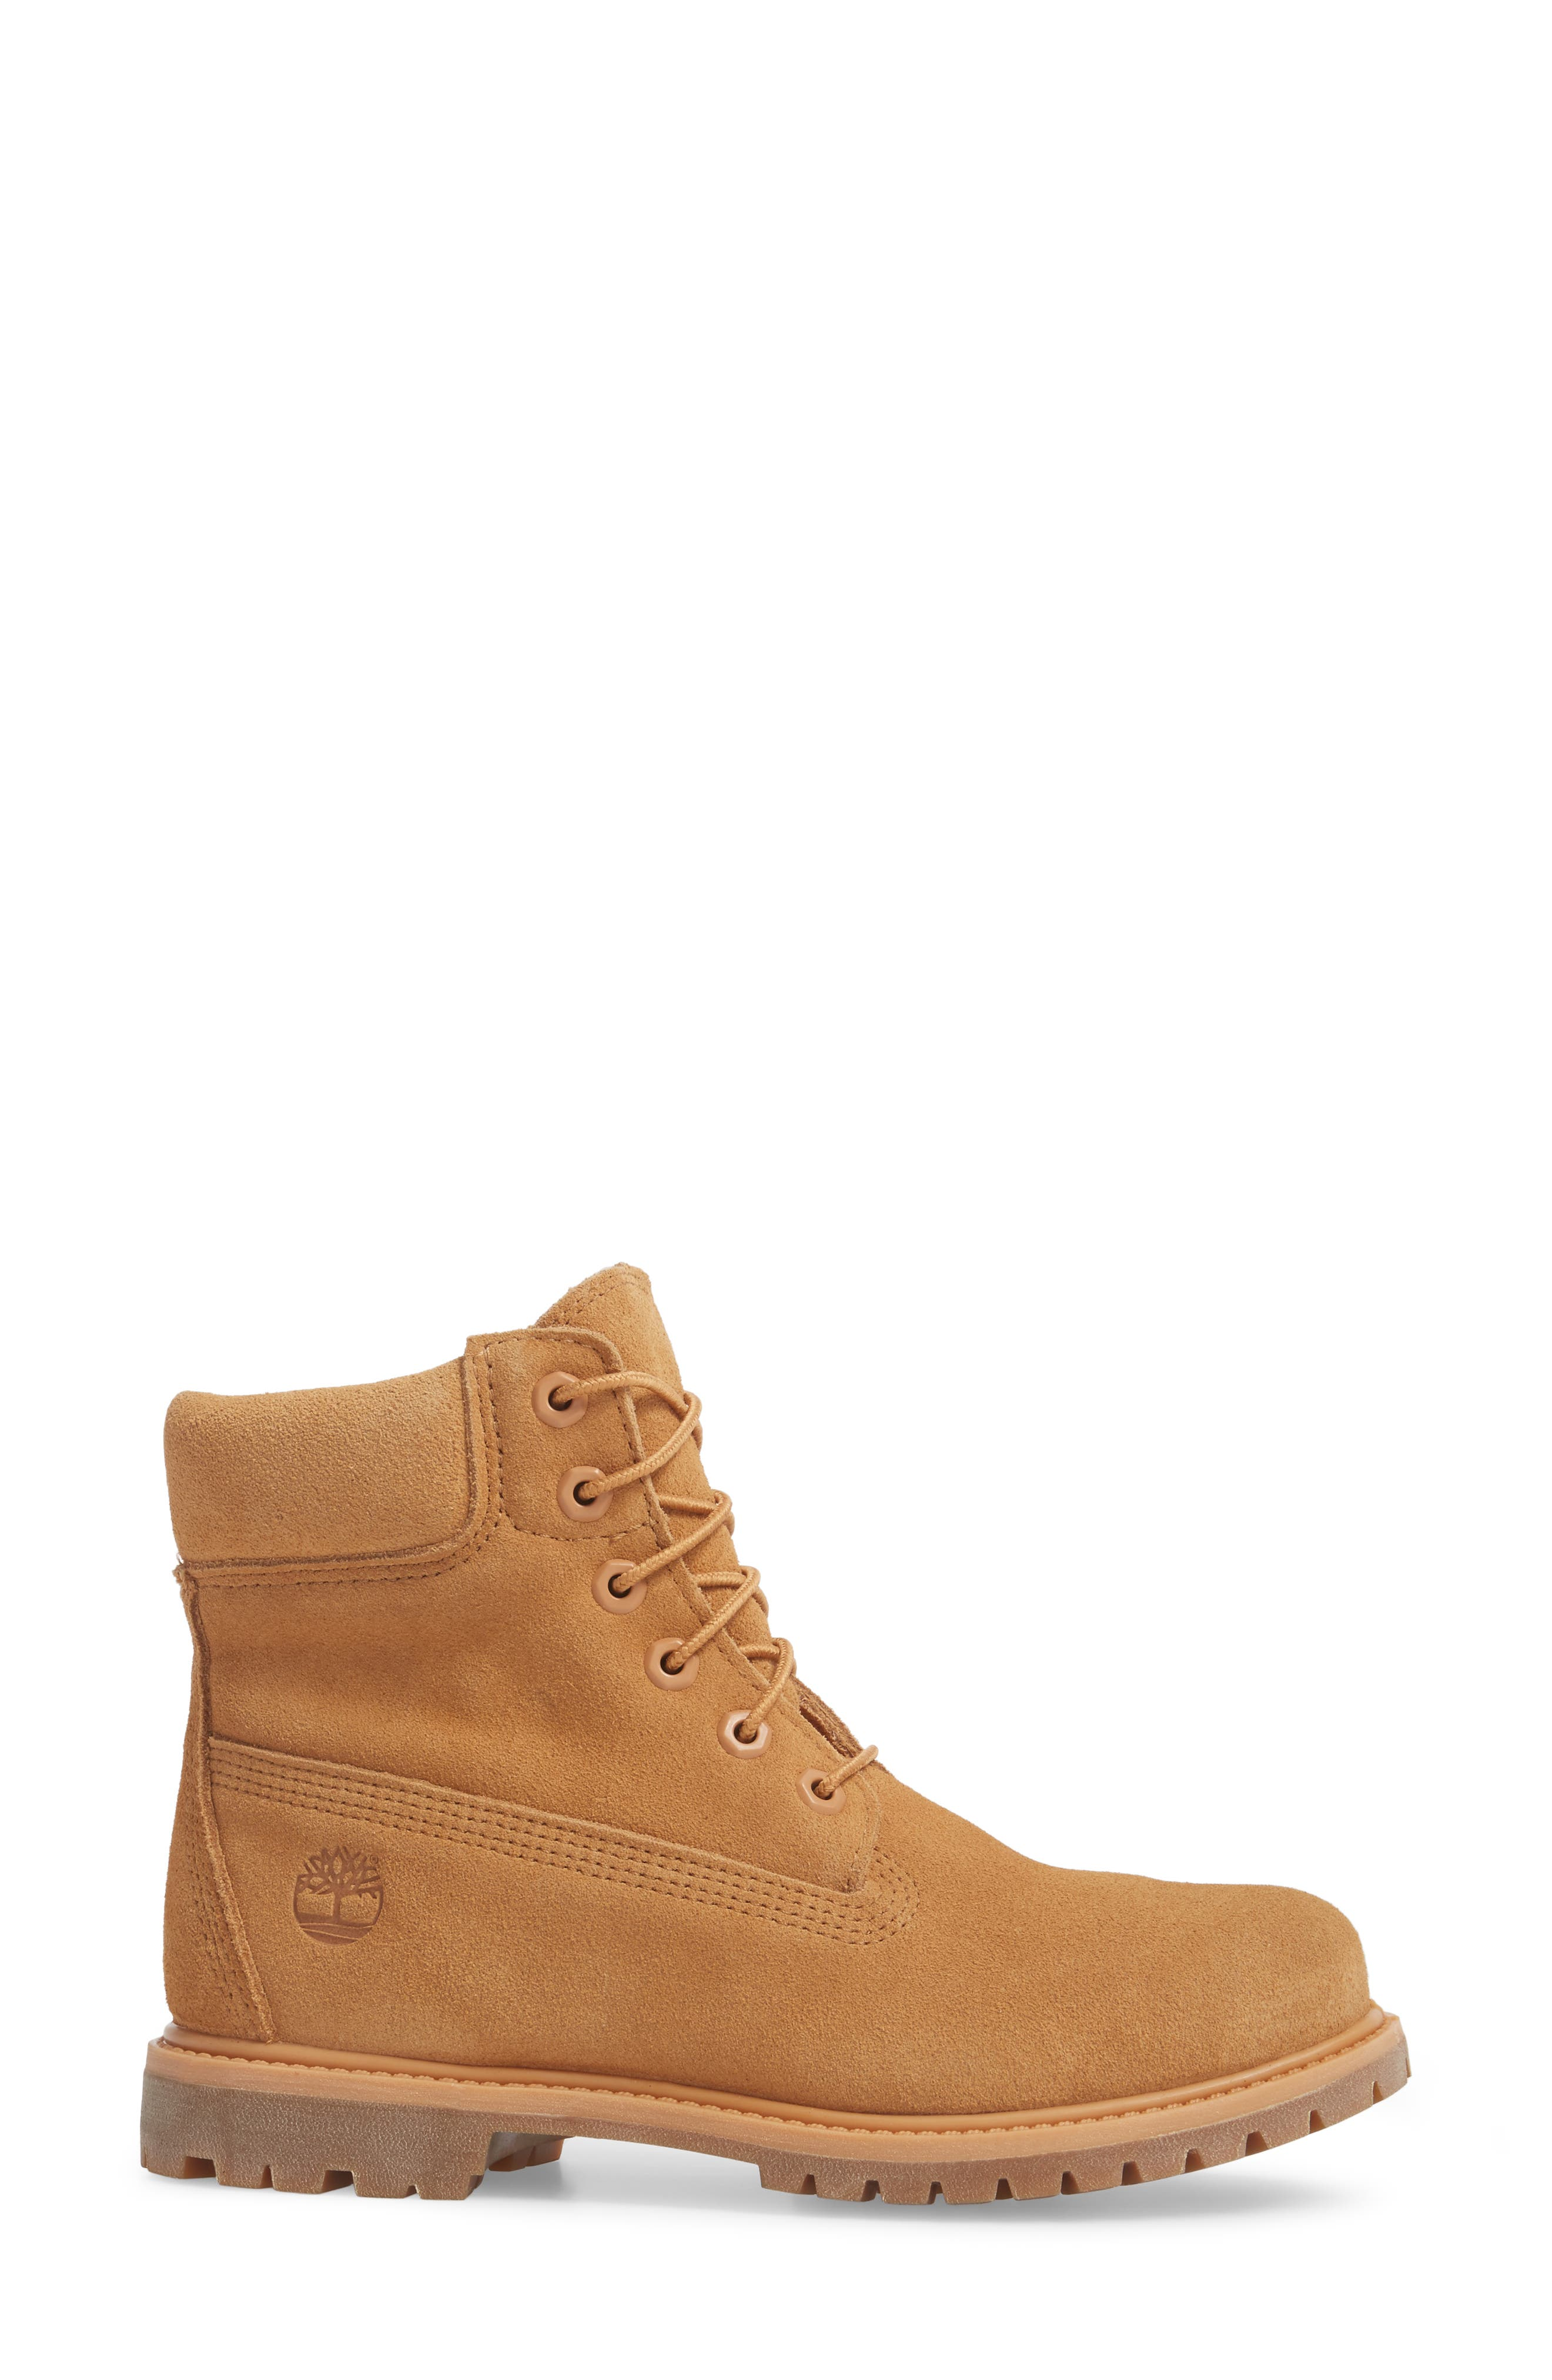 6 Inch Boot,                             Alternate thumbnail 3, color,                             Biscuit Nubuck Leather